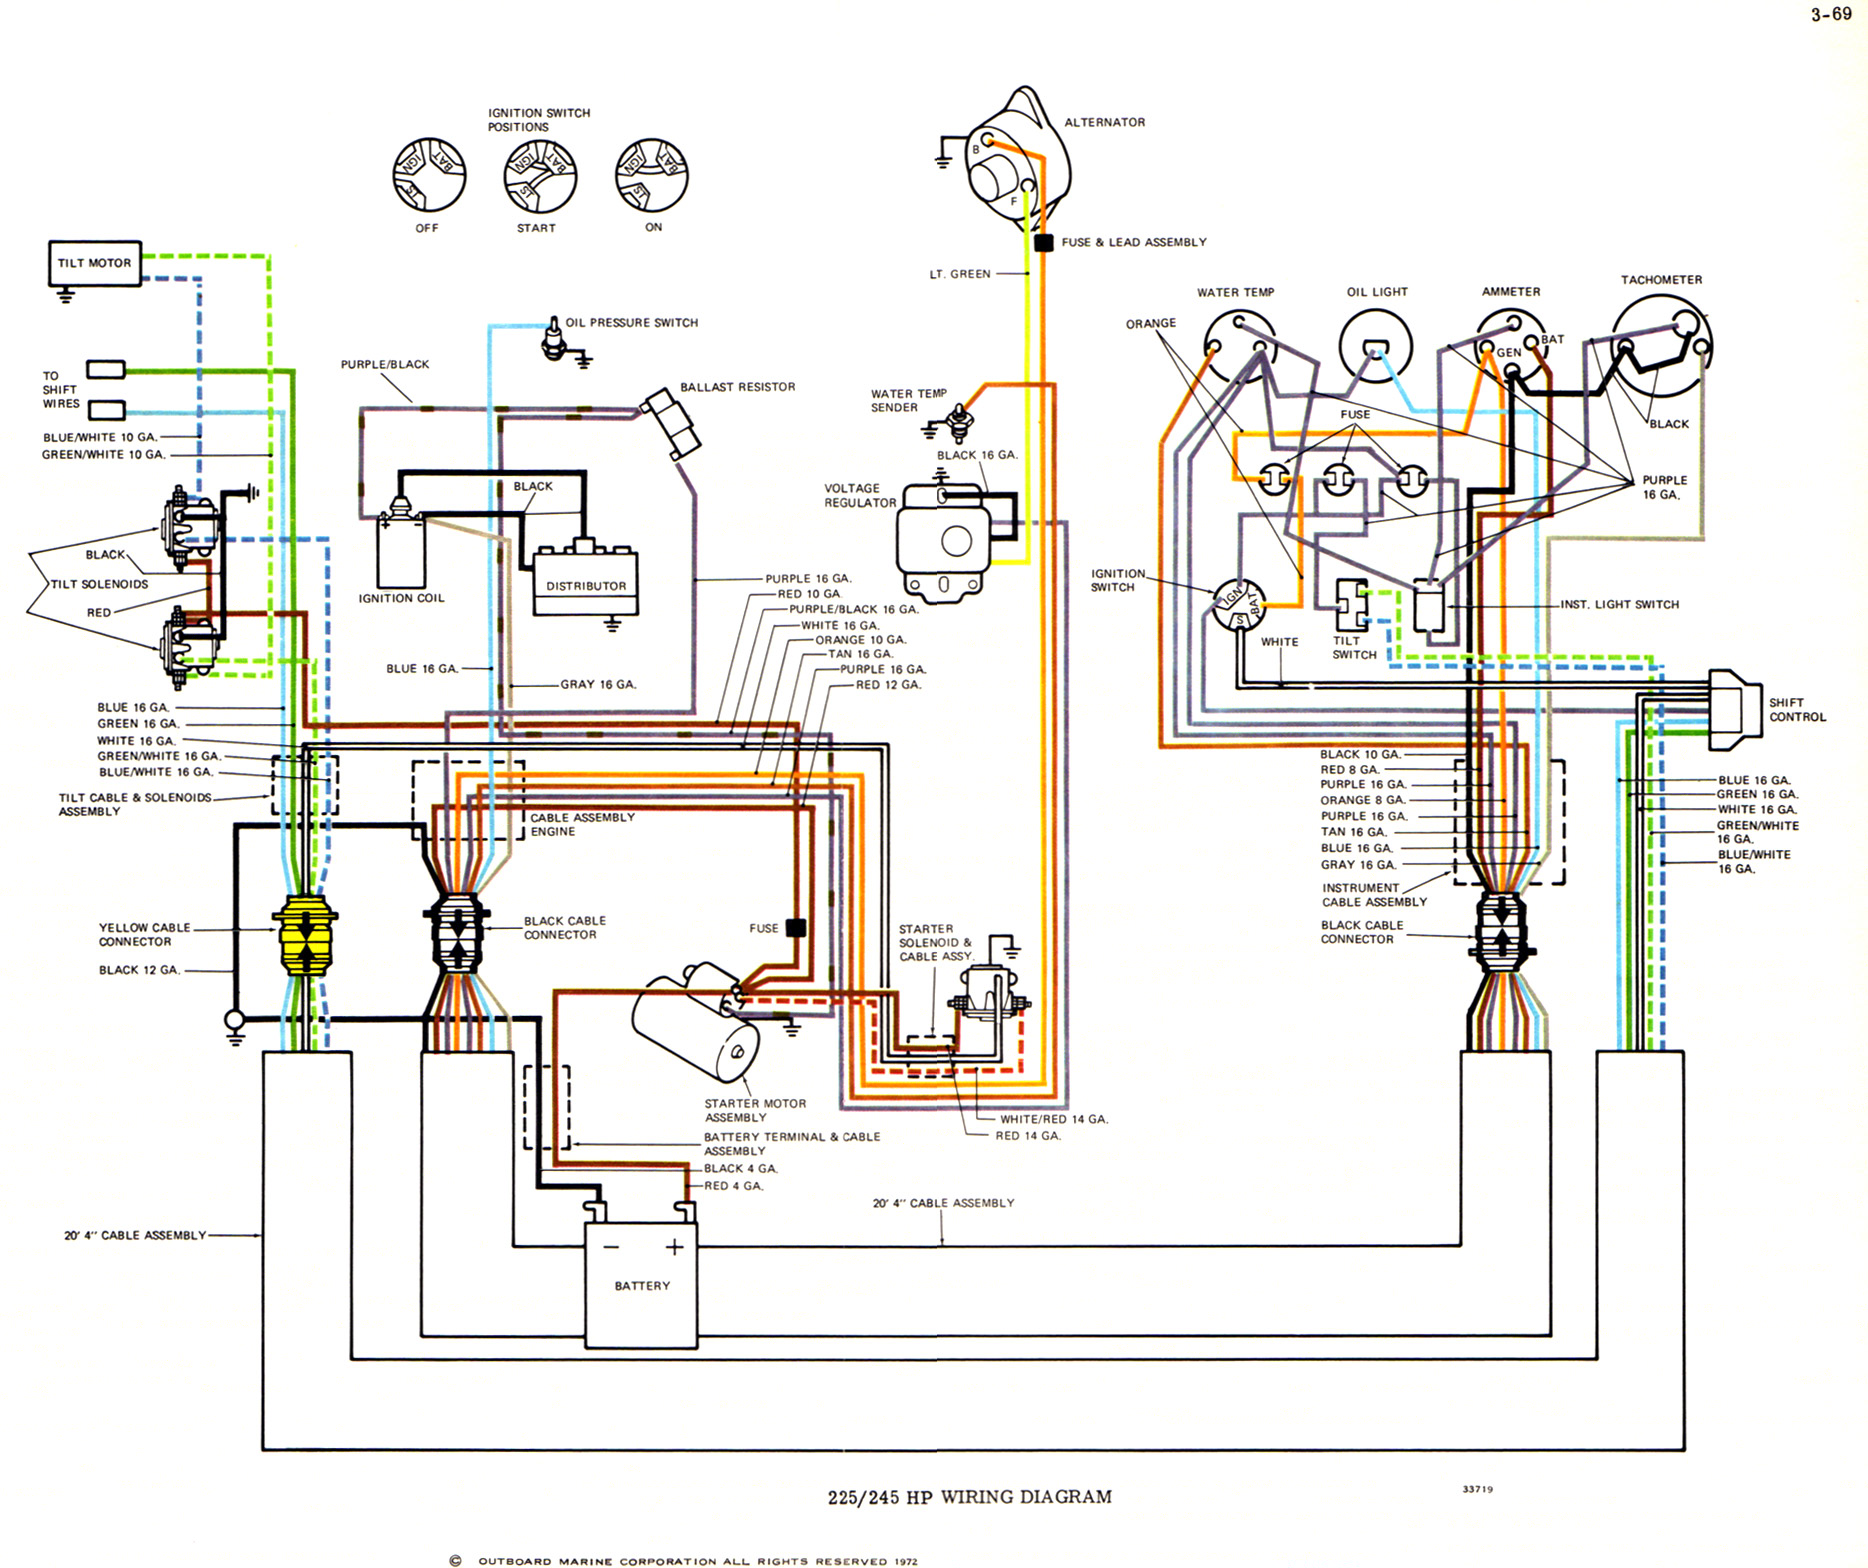 Wiring Diagram Furthermore Yamaha Outboard Tachometer 1970 Chevy Engine Hp As Well C10 Evinrude 115